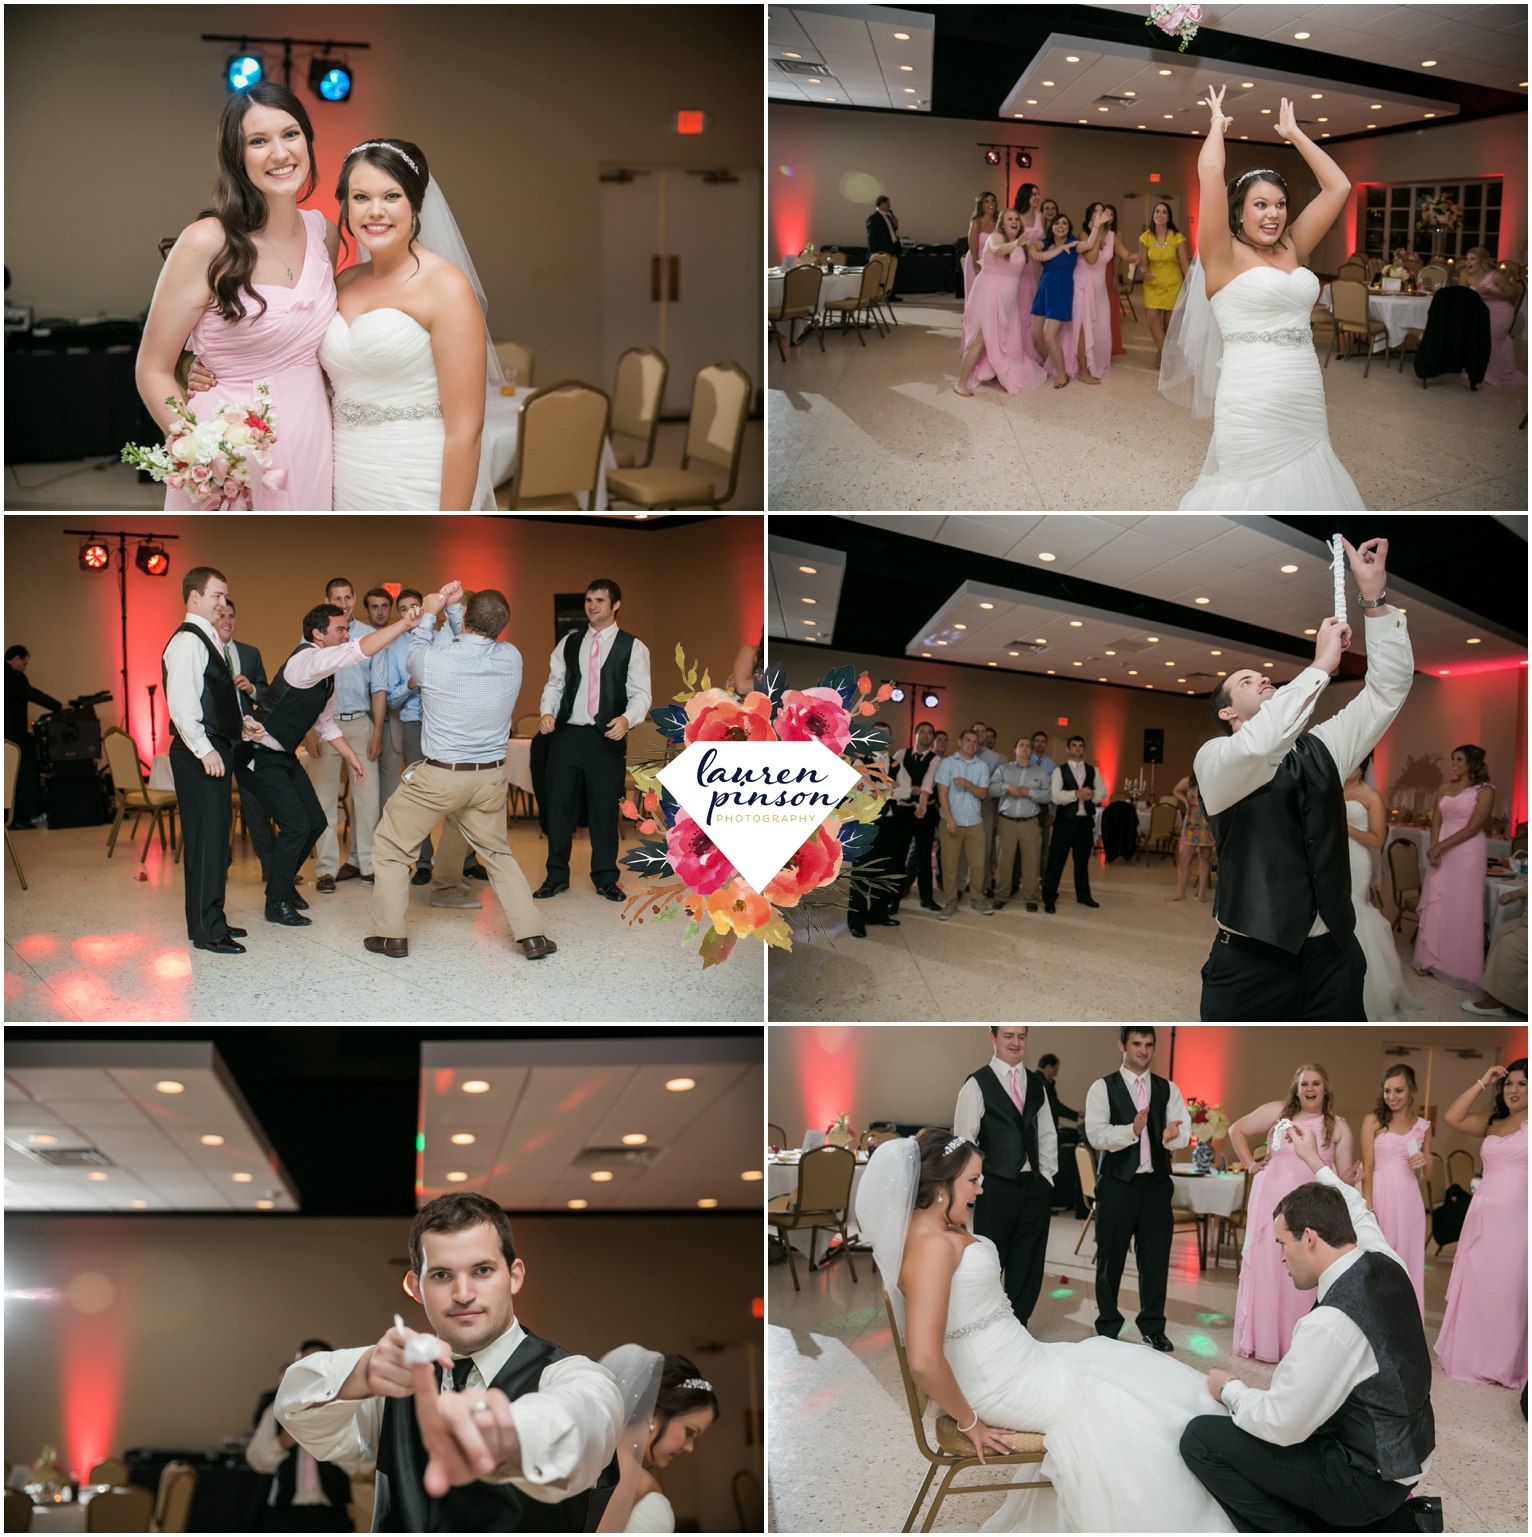 wichita-falls-wedding-photographer-kemp-center-at-the-forum-photography-two-clever-chicks_1079.jpg